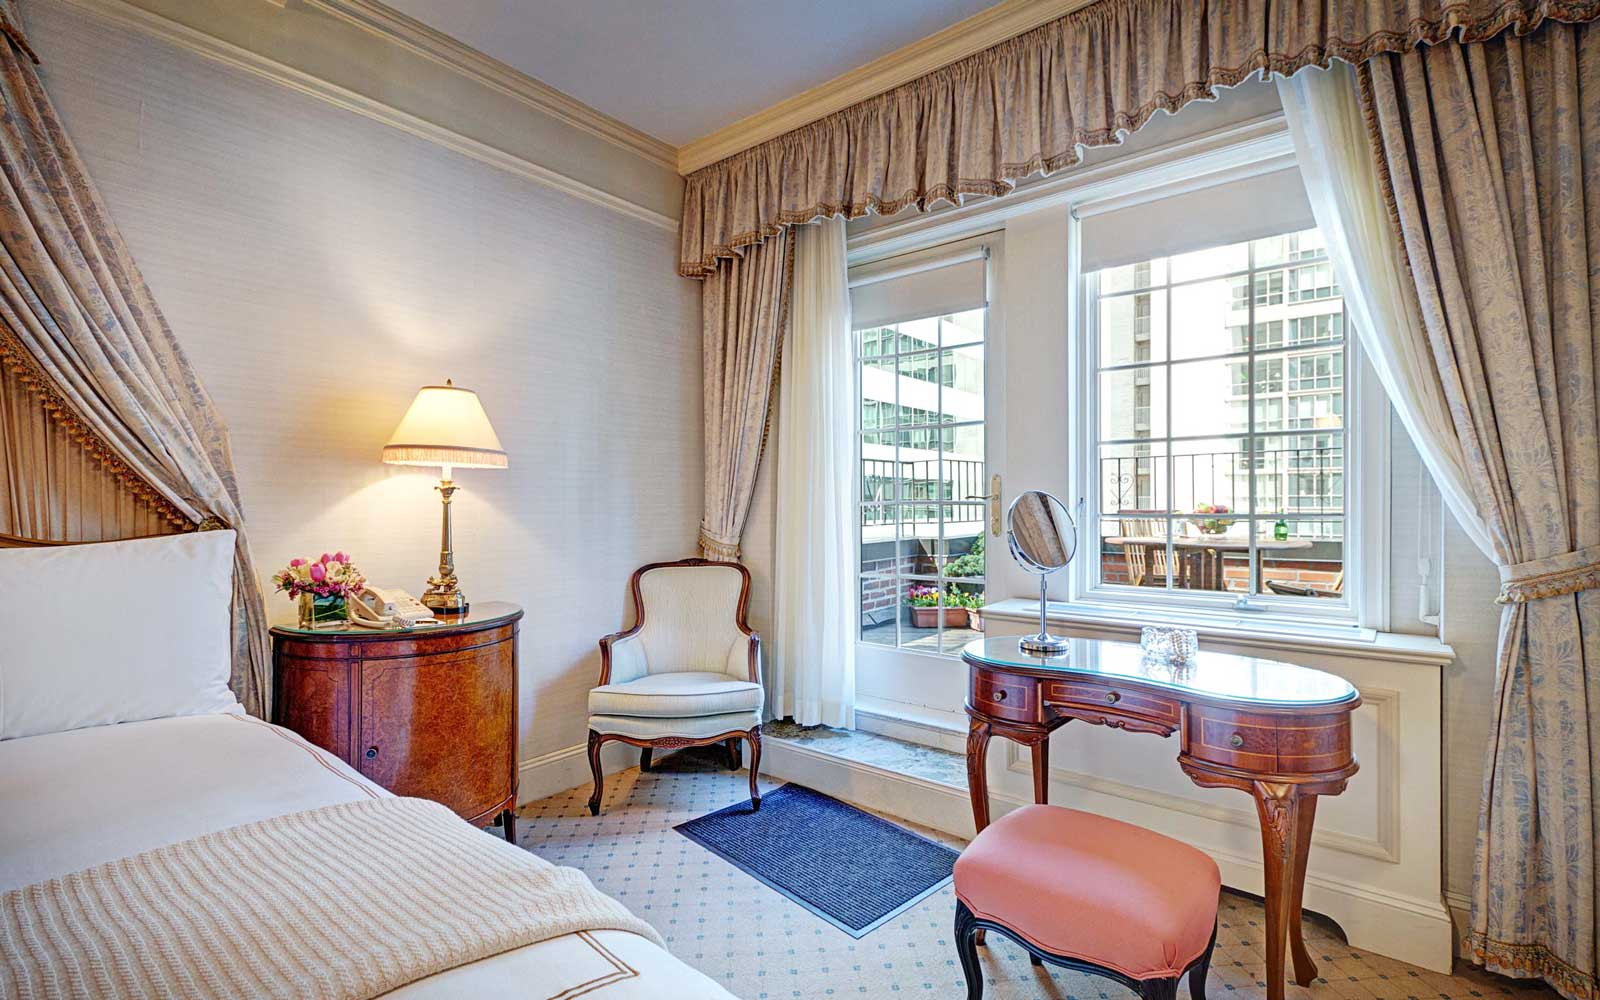 11. Hotel Elysee, New York City